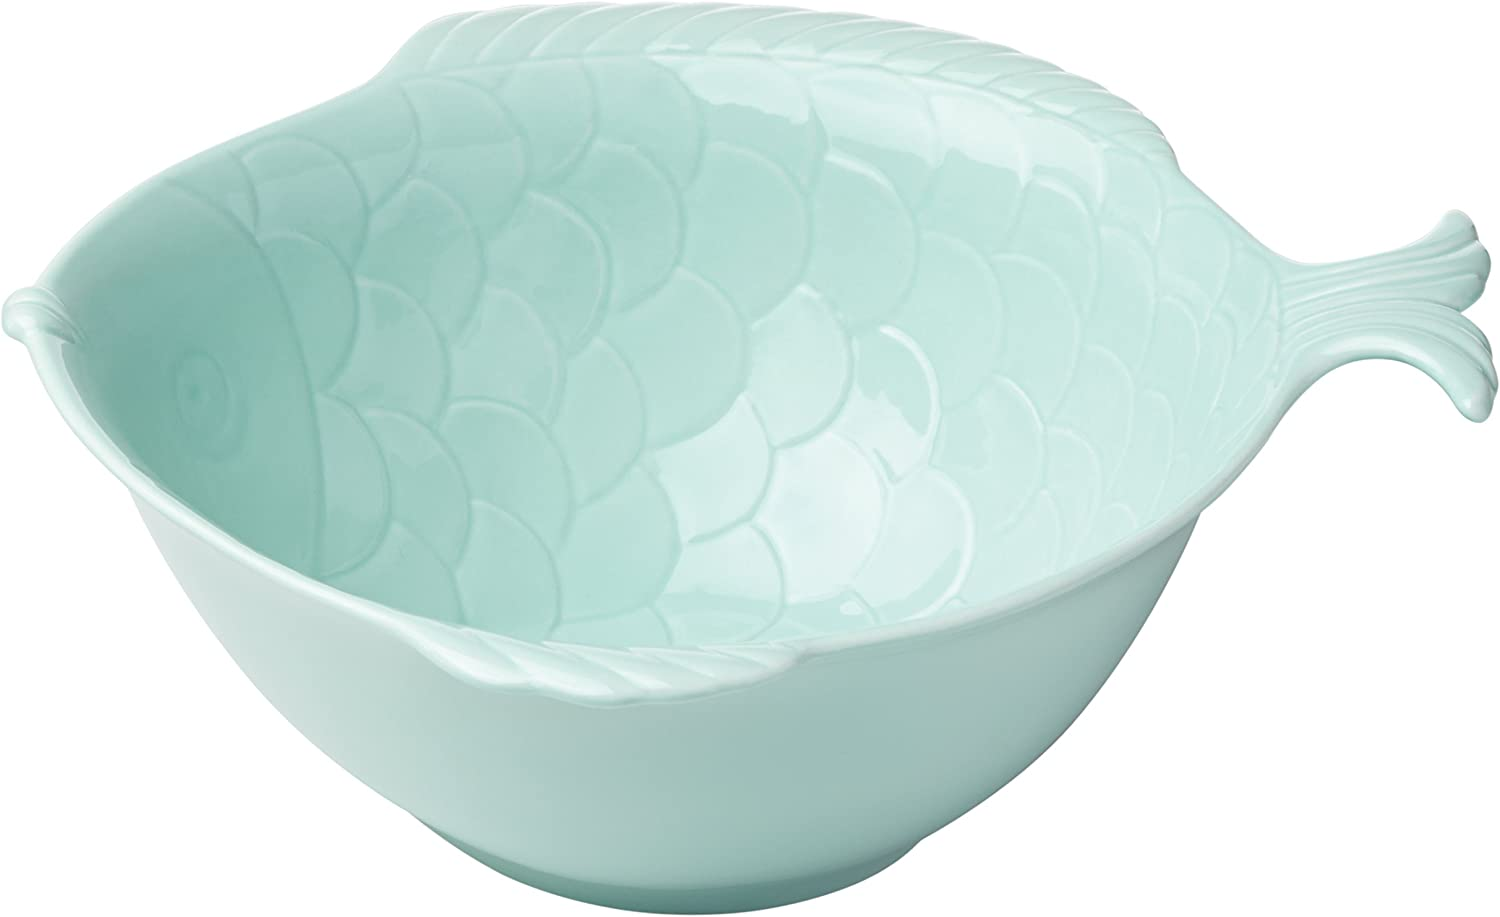 Lenox British Colonial Carved Fish Serving Bowl, Aqua